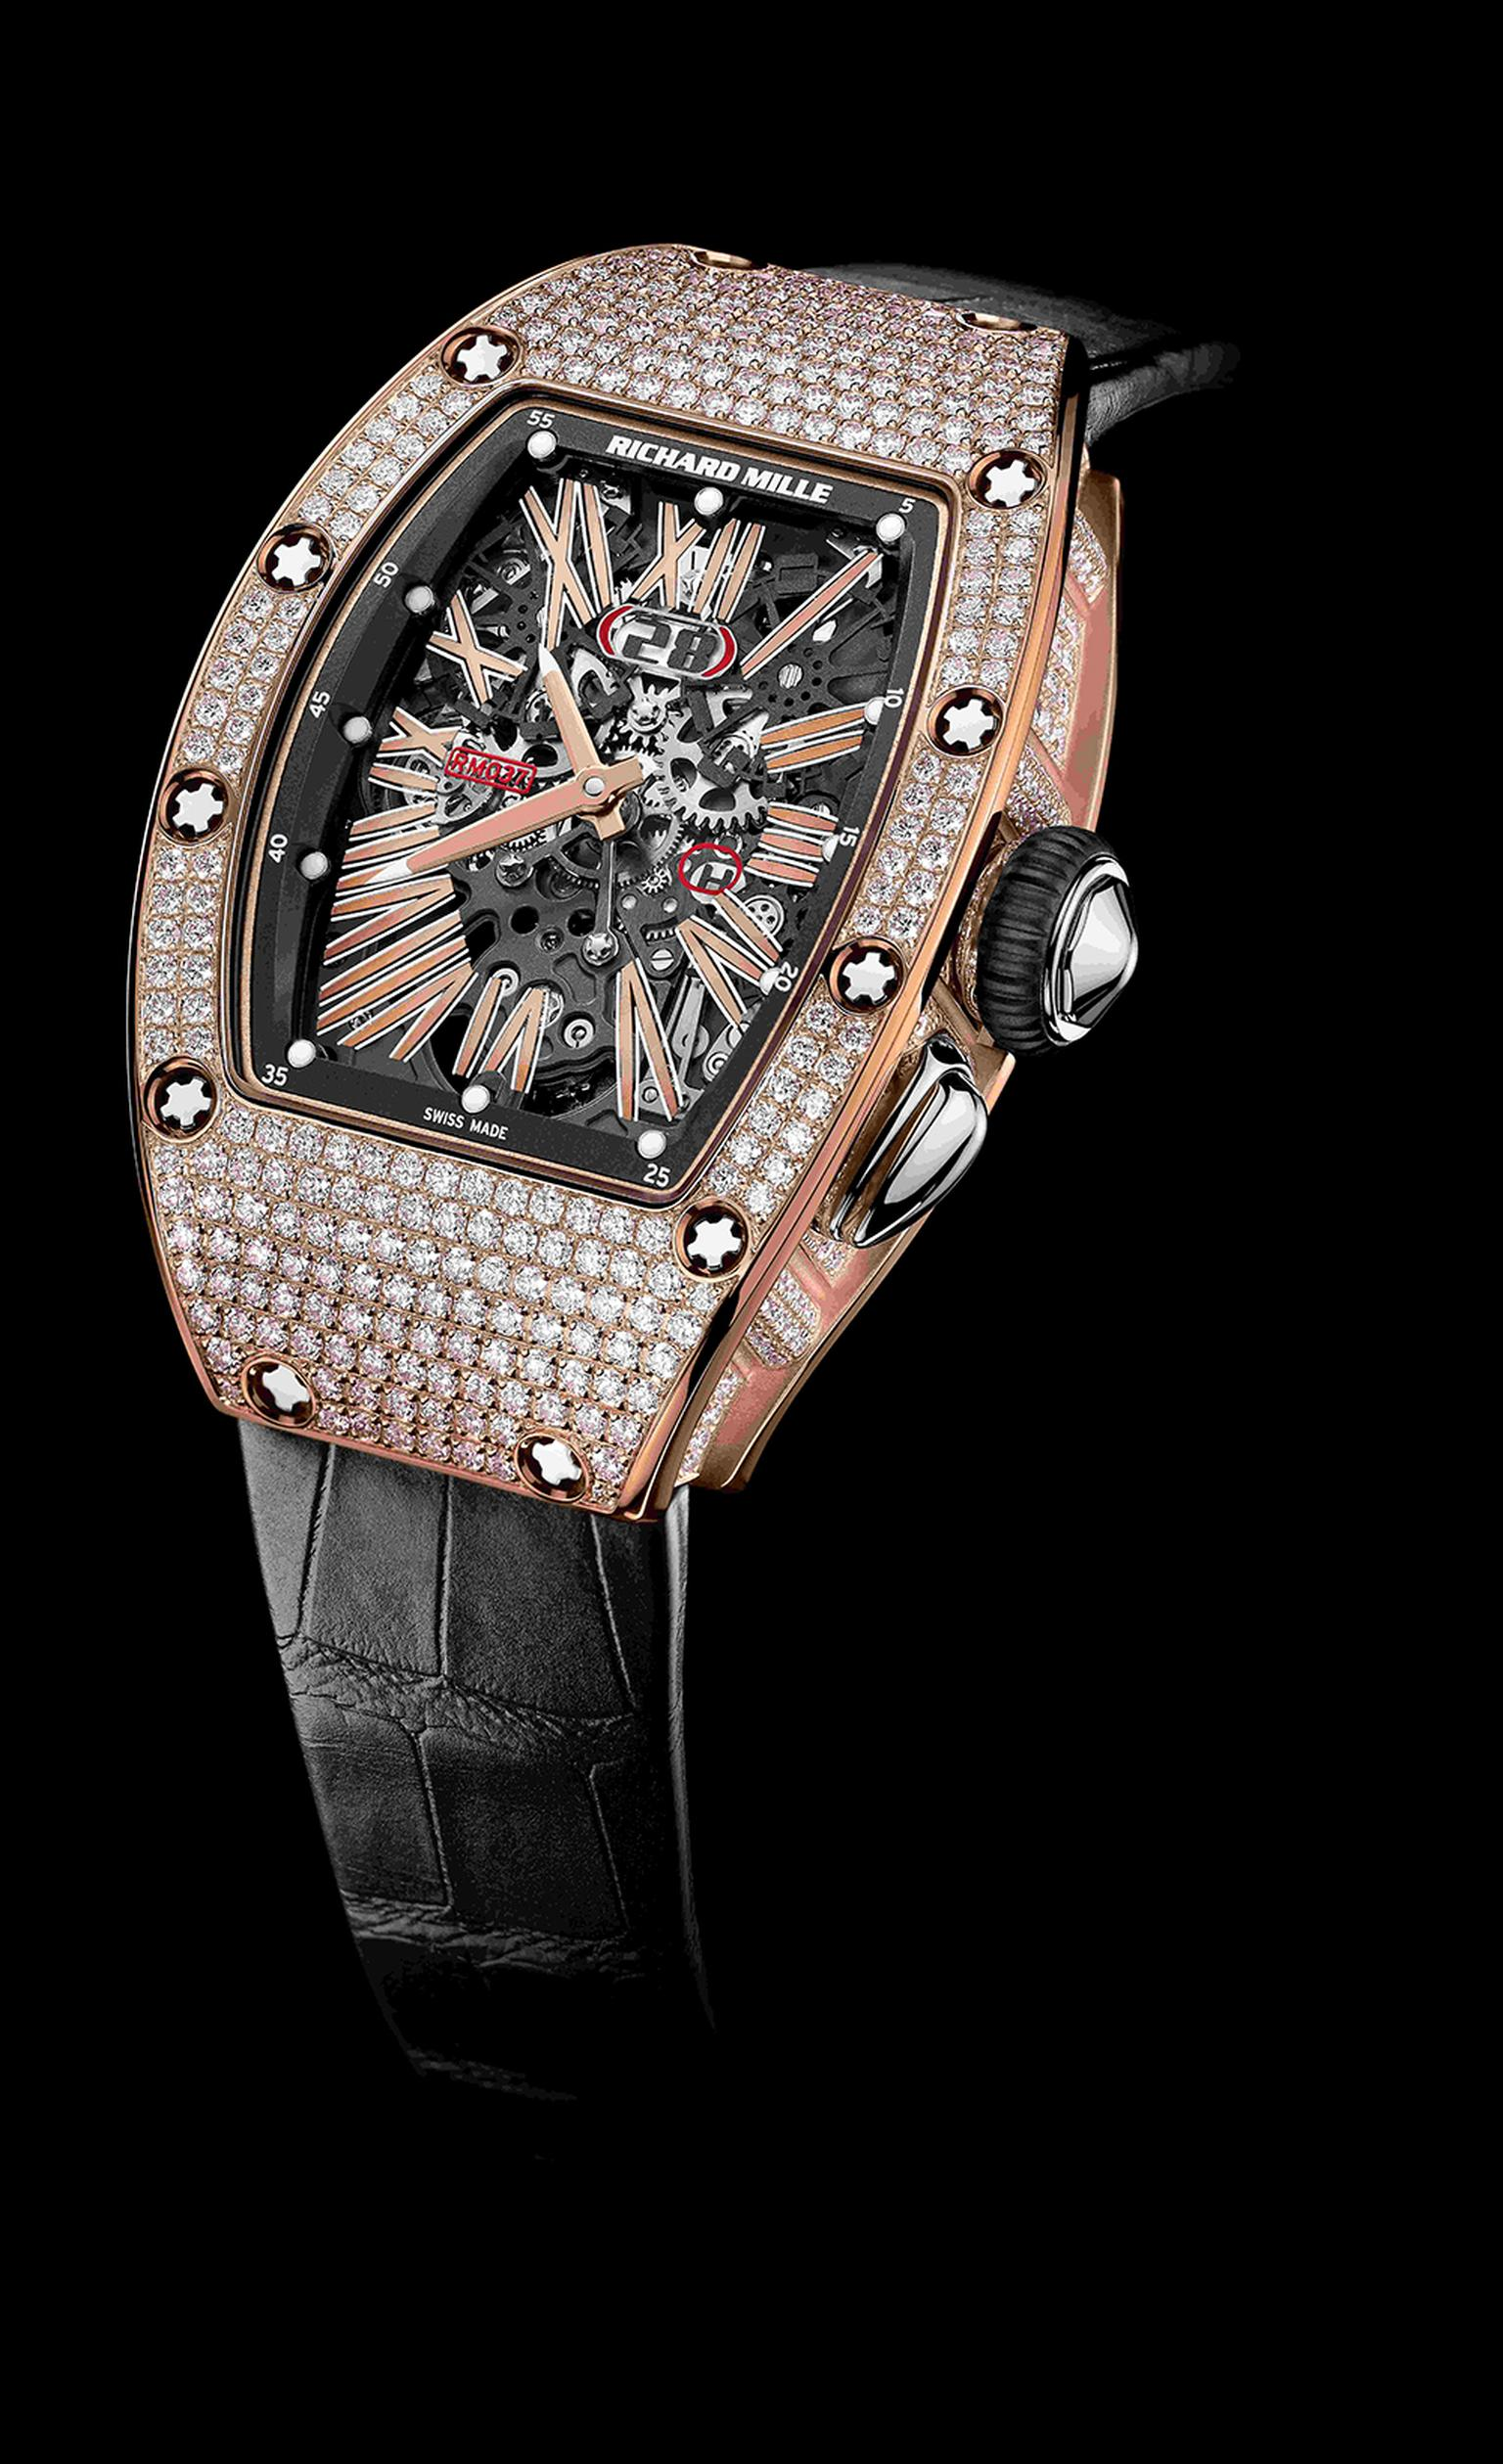 RichardMille037